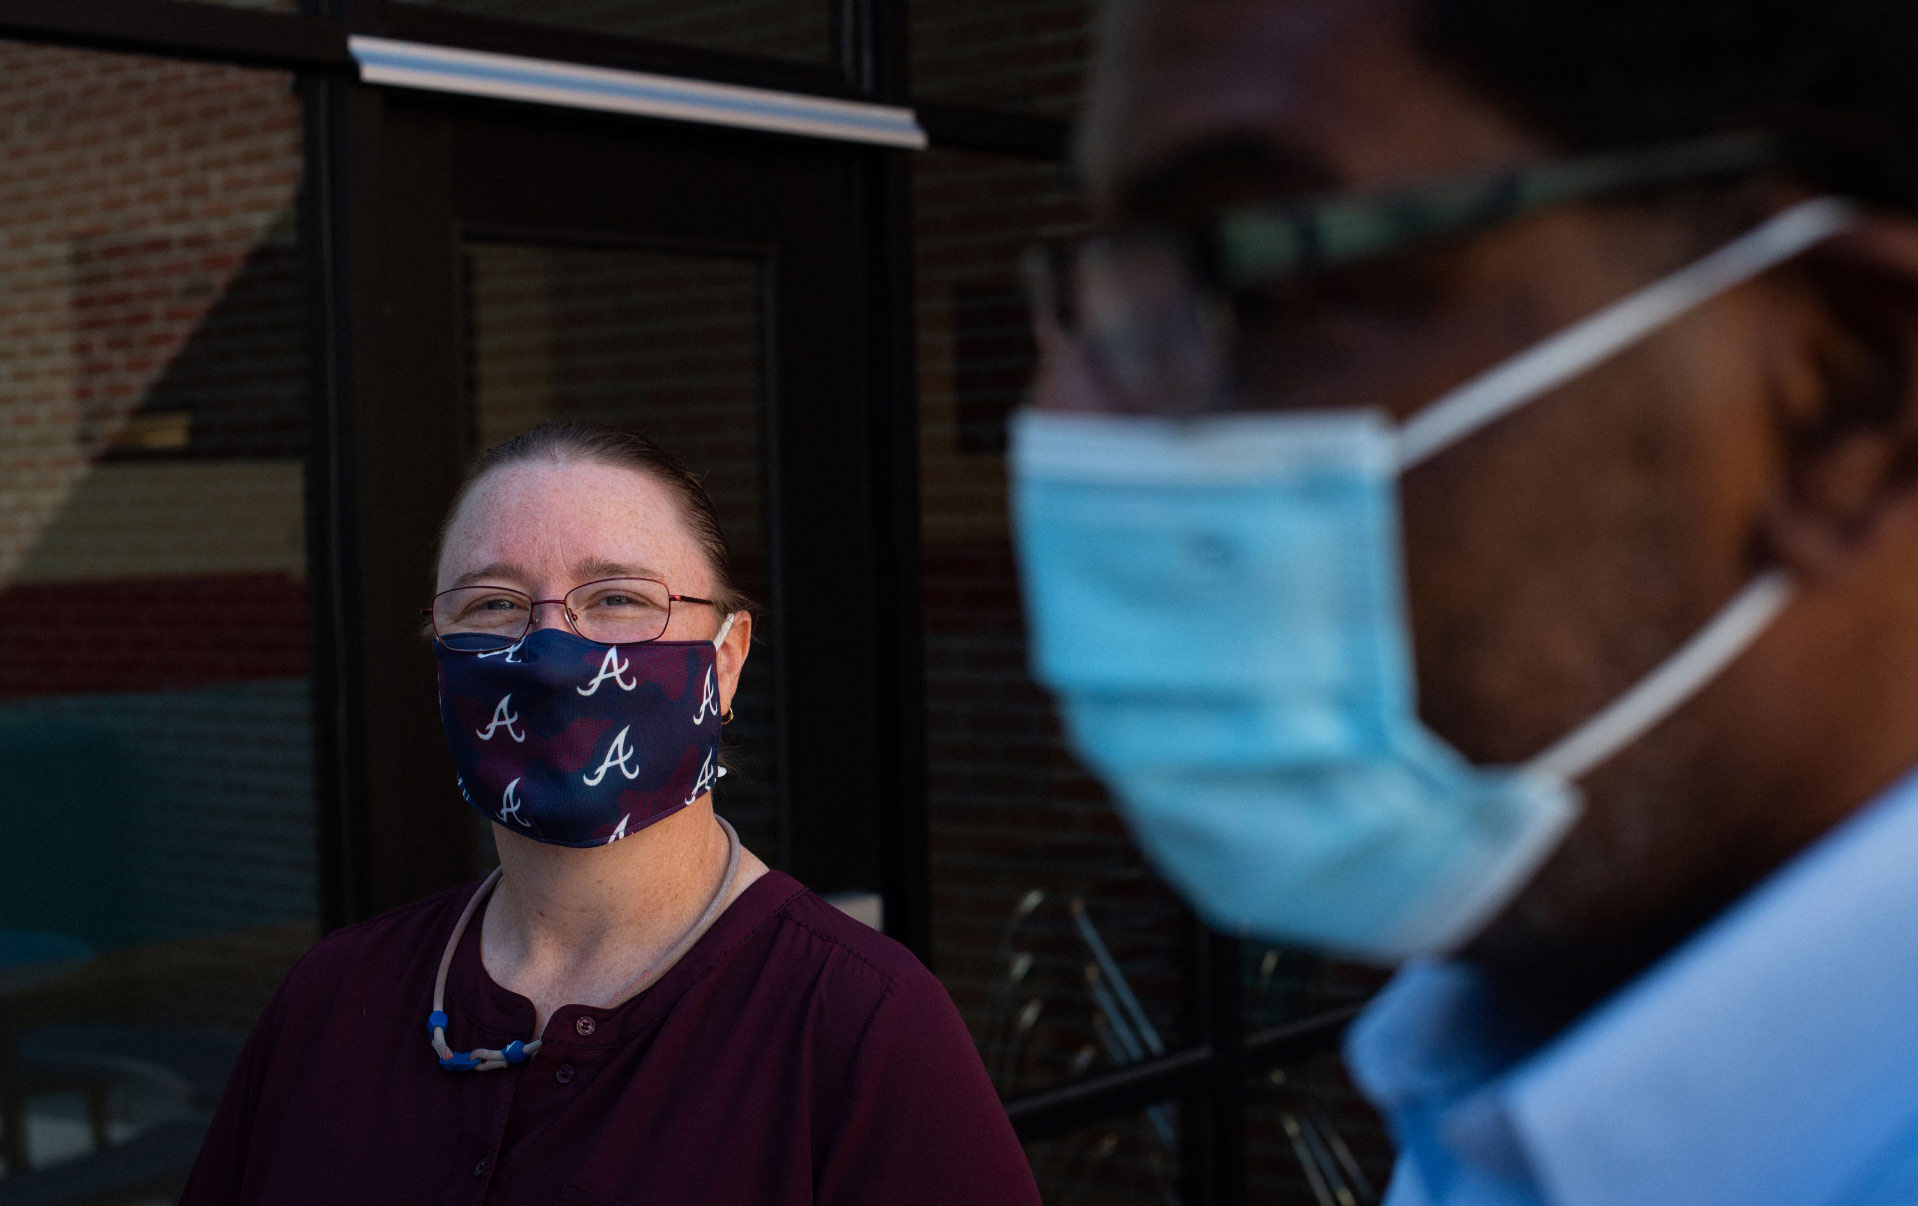 Marci Smith, a middle-aged white woman, is shown in focus on the left side of the photo. She has brown hair, pulled back in a ponytail, and is wearing glasses and red blouse. She is wearing a maroon and blue face mask. Ivan is in the foreground of the photo, out of focus and wearing a blue surgical mask.